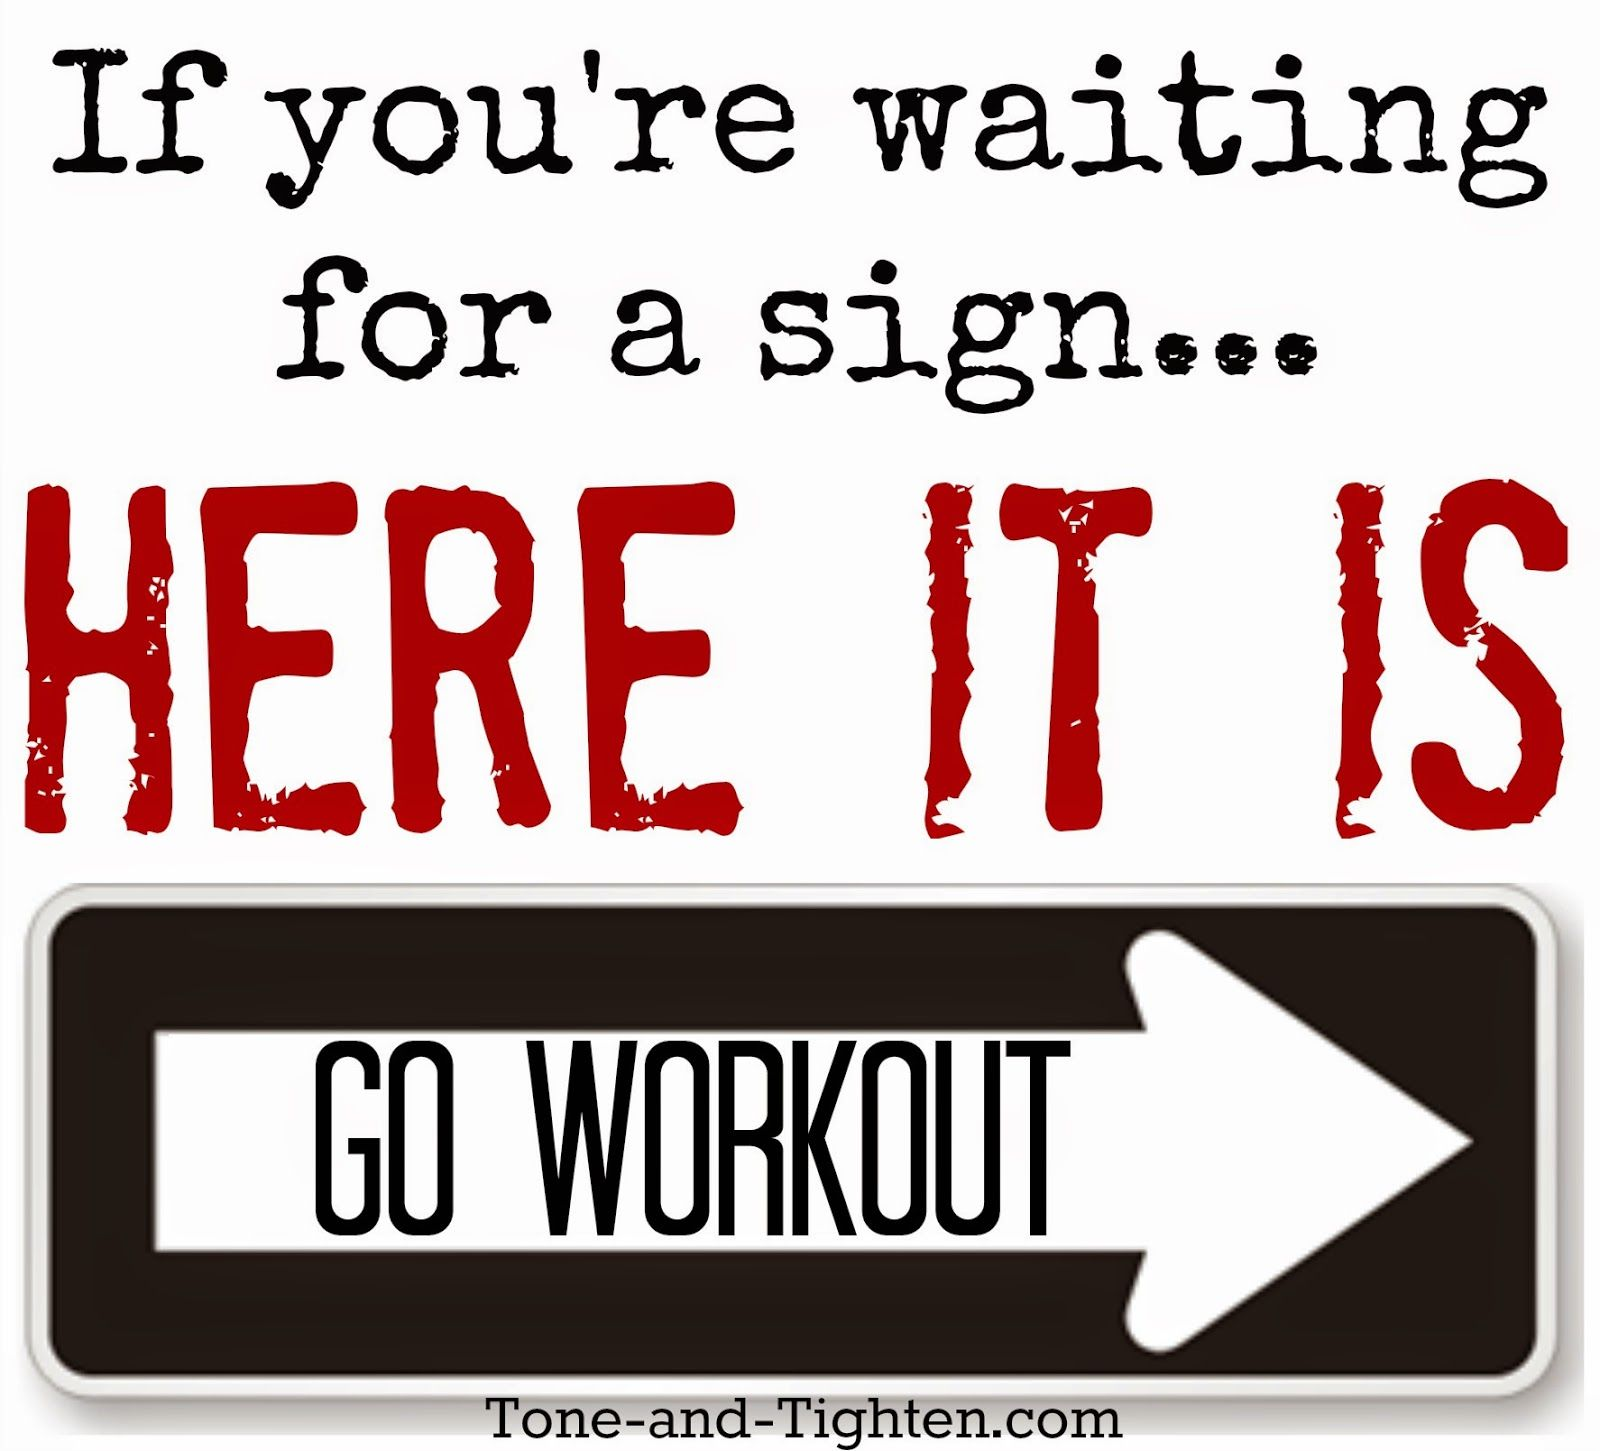 Fitness Motivation Stop Waiting And Start Doing Gym Inspiration Fitness Motivation Quotes Fitness Motivation Inspiration Gym Fitness Motivation